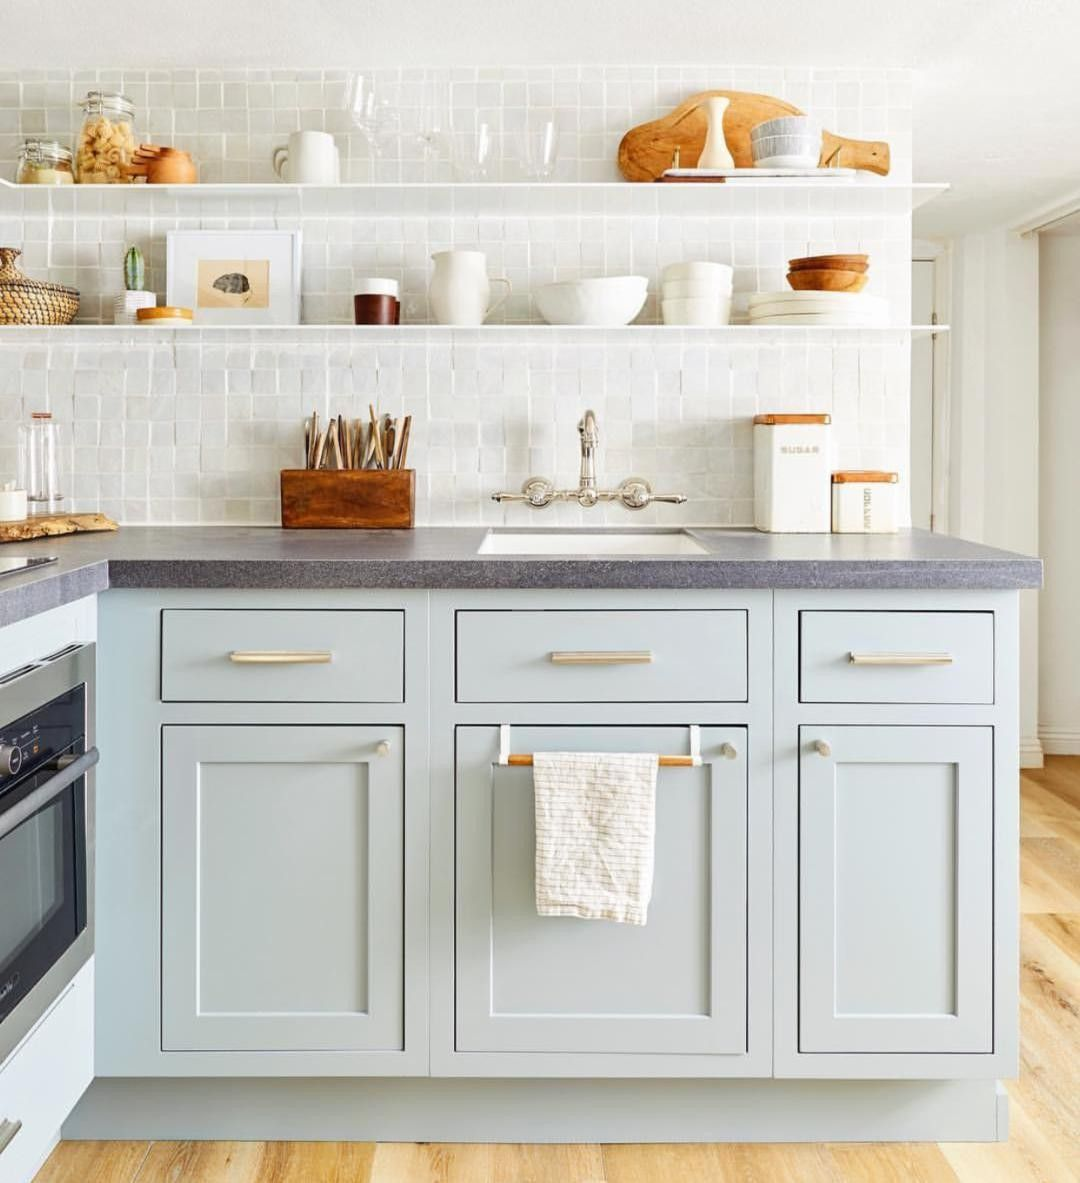 Looking For A Way To Add Color To Your White Kitchen A Light Blue Shade Can Make Your Home Feel W In 2020 Kitchen Cabinet Trends Kitchen Cabinet Colors Kitchen Design